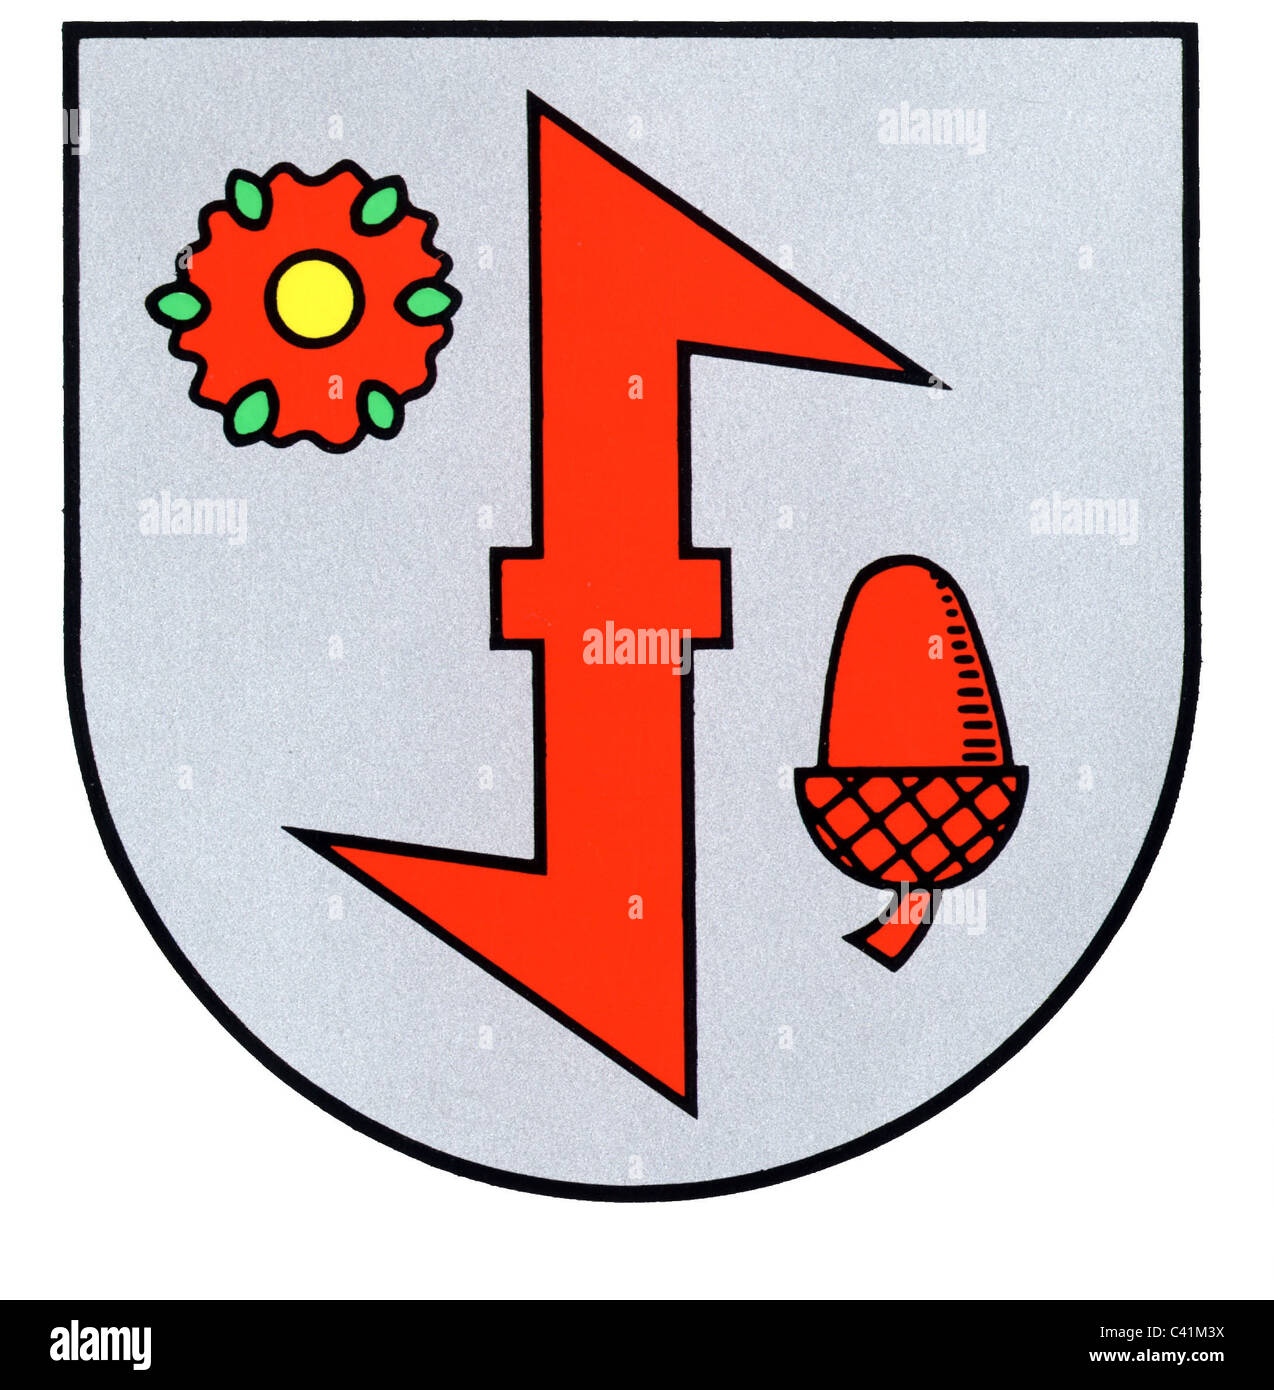 coat of arms / emblems, Idar-Oberstein, city arms, Rhineland-Palatinate, Germany, Additional-Rights-Clearences-NAStock Photo